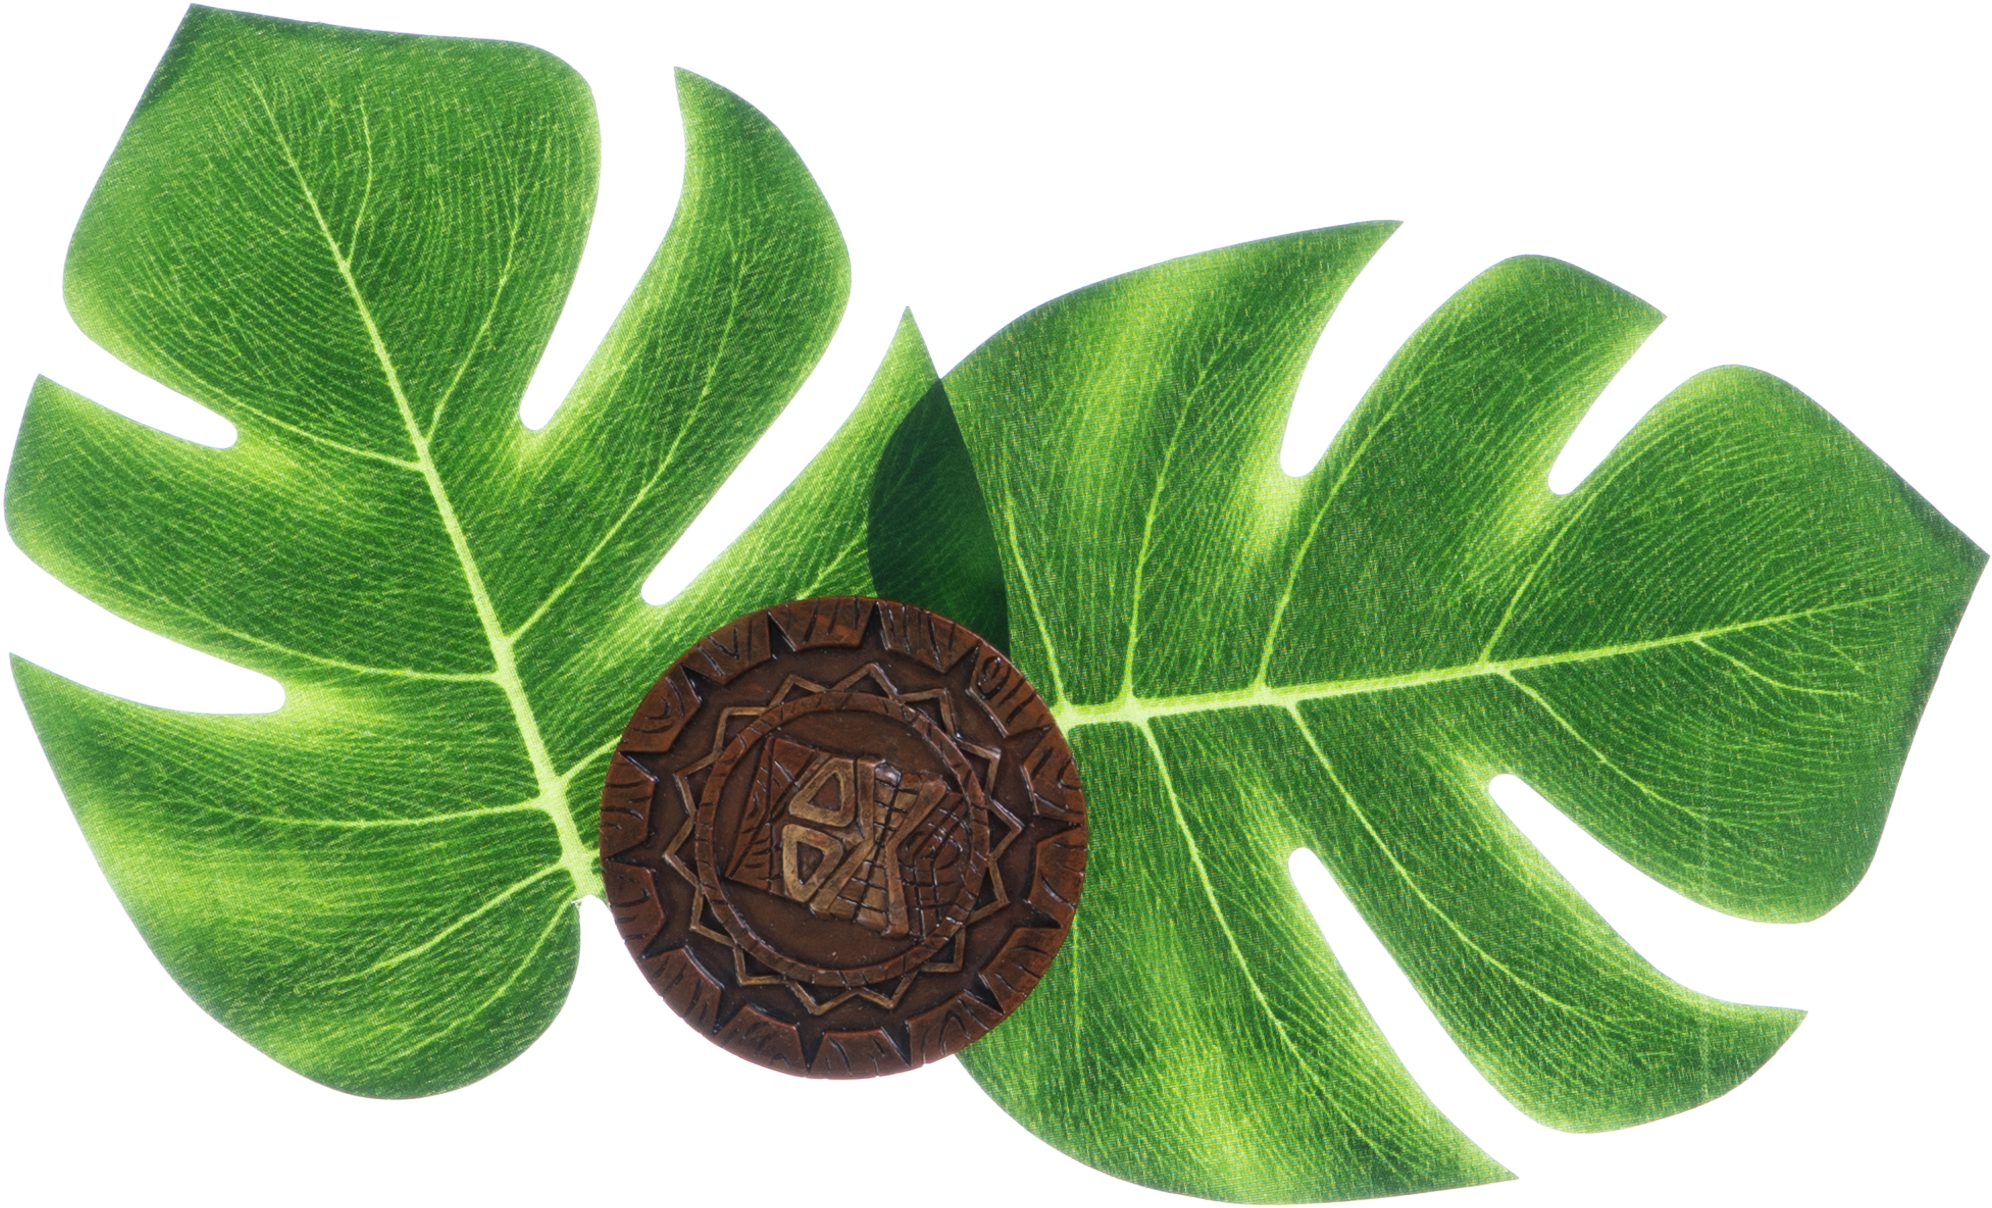 Tropical leaves and drinks coaster